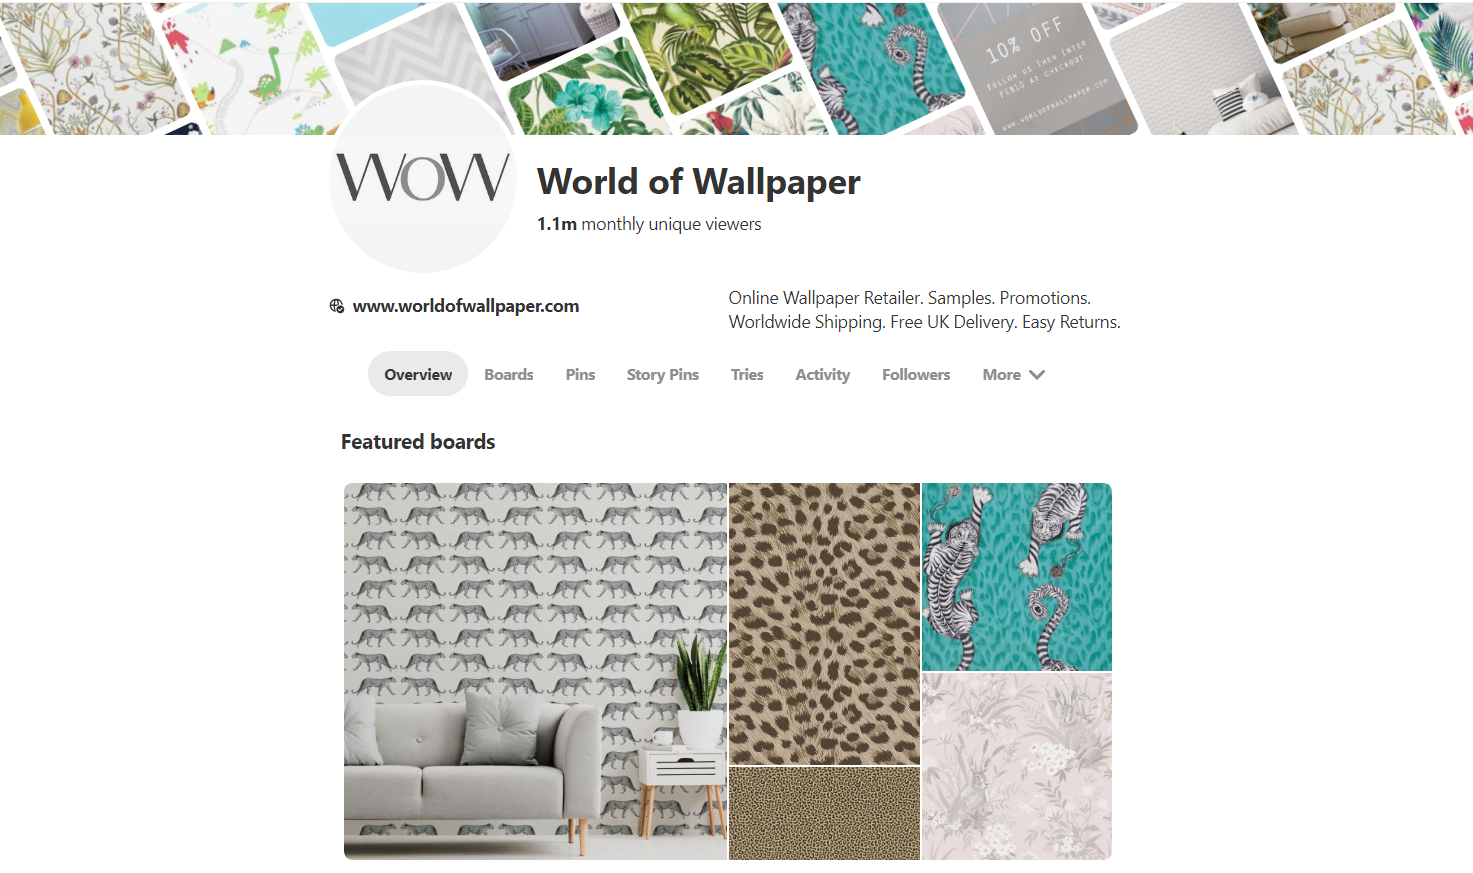 Wallpaper and Home Decor on Pinterest